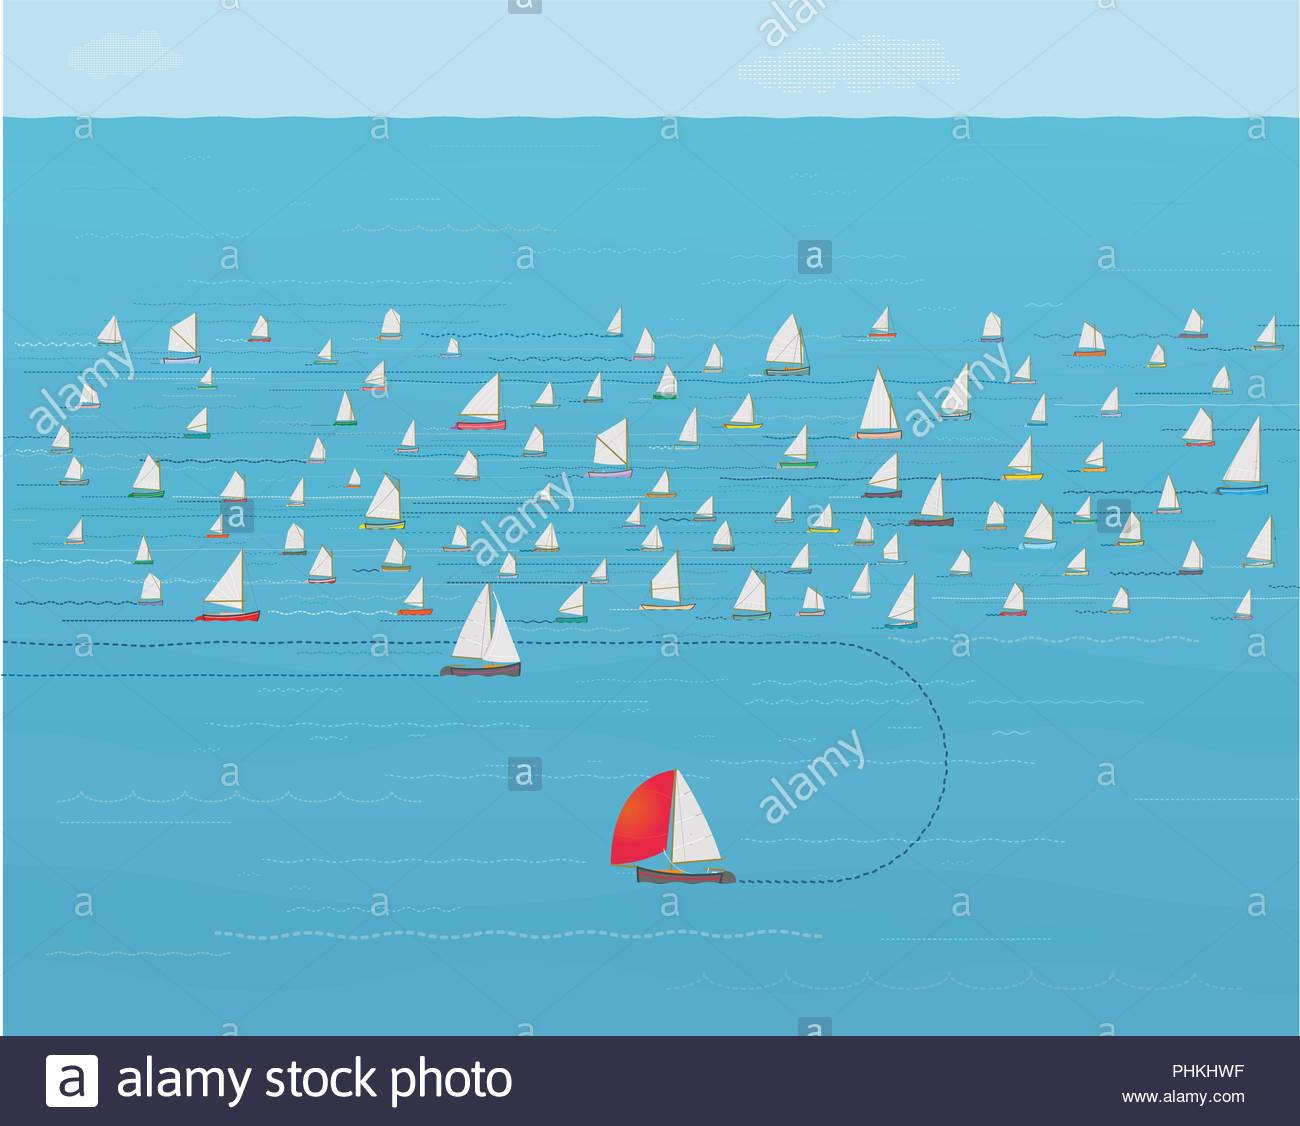 Sailboat turning around and leaving crowded Fleet, New Direction, Change Direction, Timing, Knowing when to Quit, Time for Change, Business Strategy - Stock Image